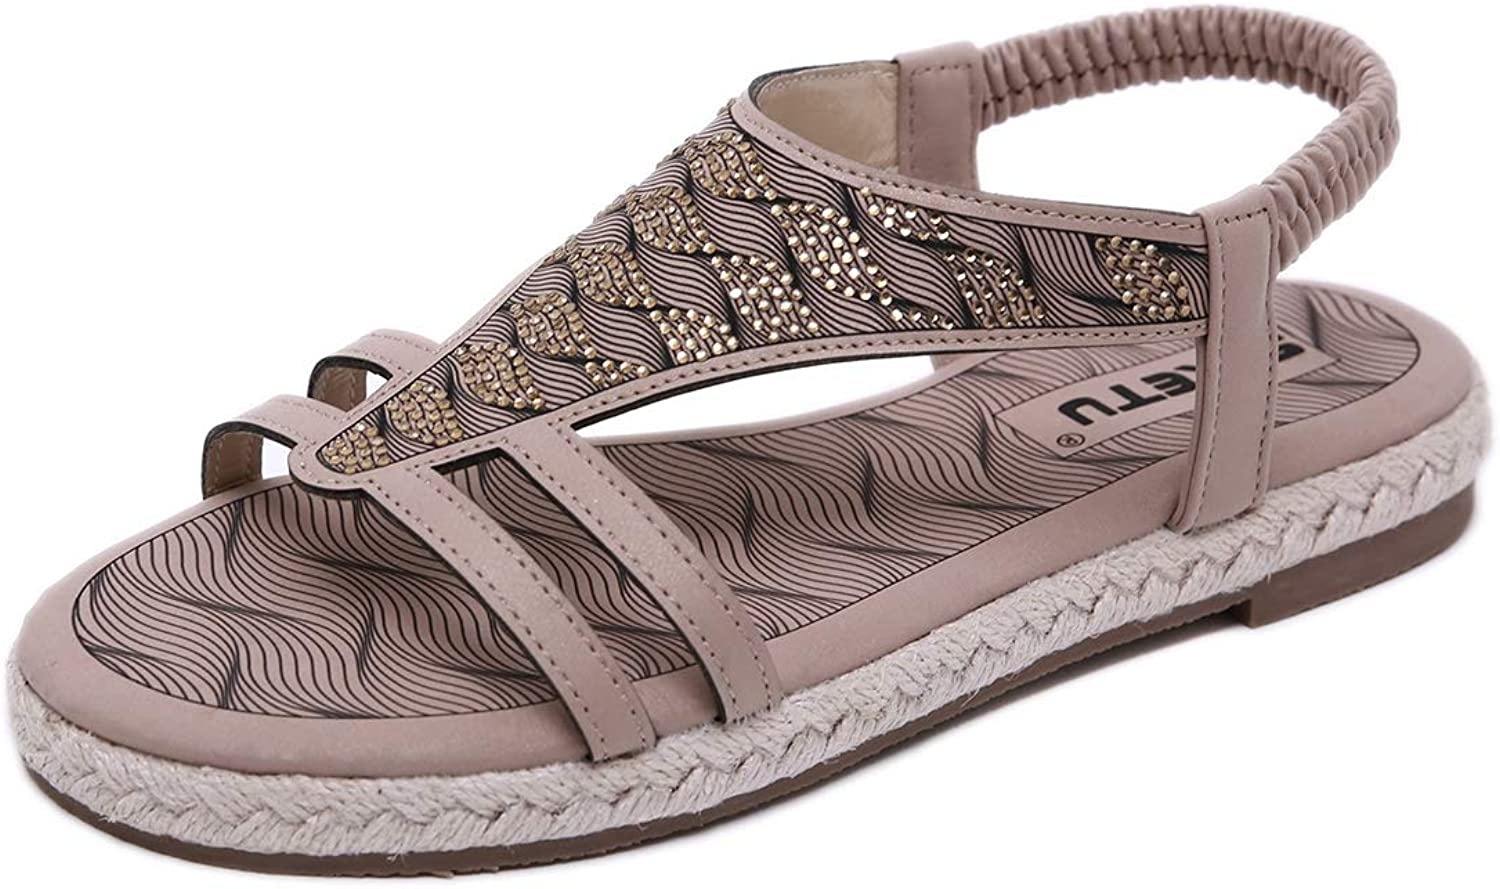 Ankle Strap and Metal Summer Flat Sandals for Women